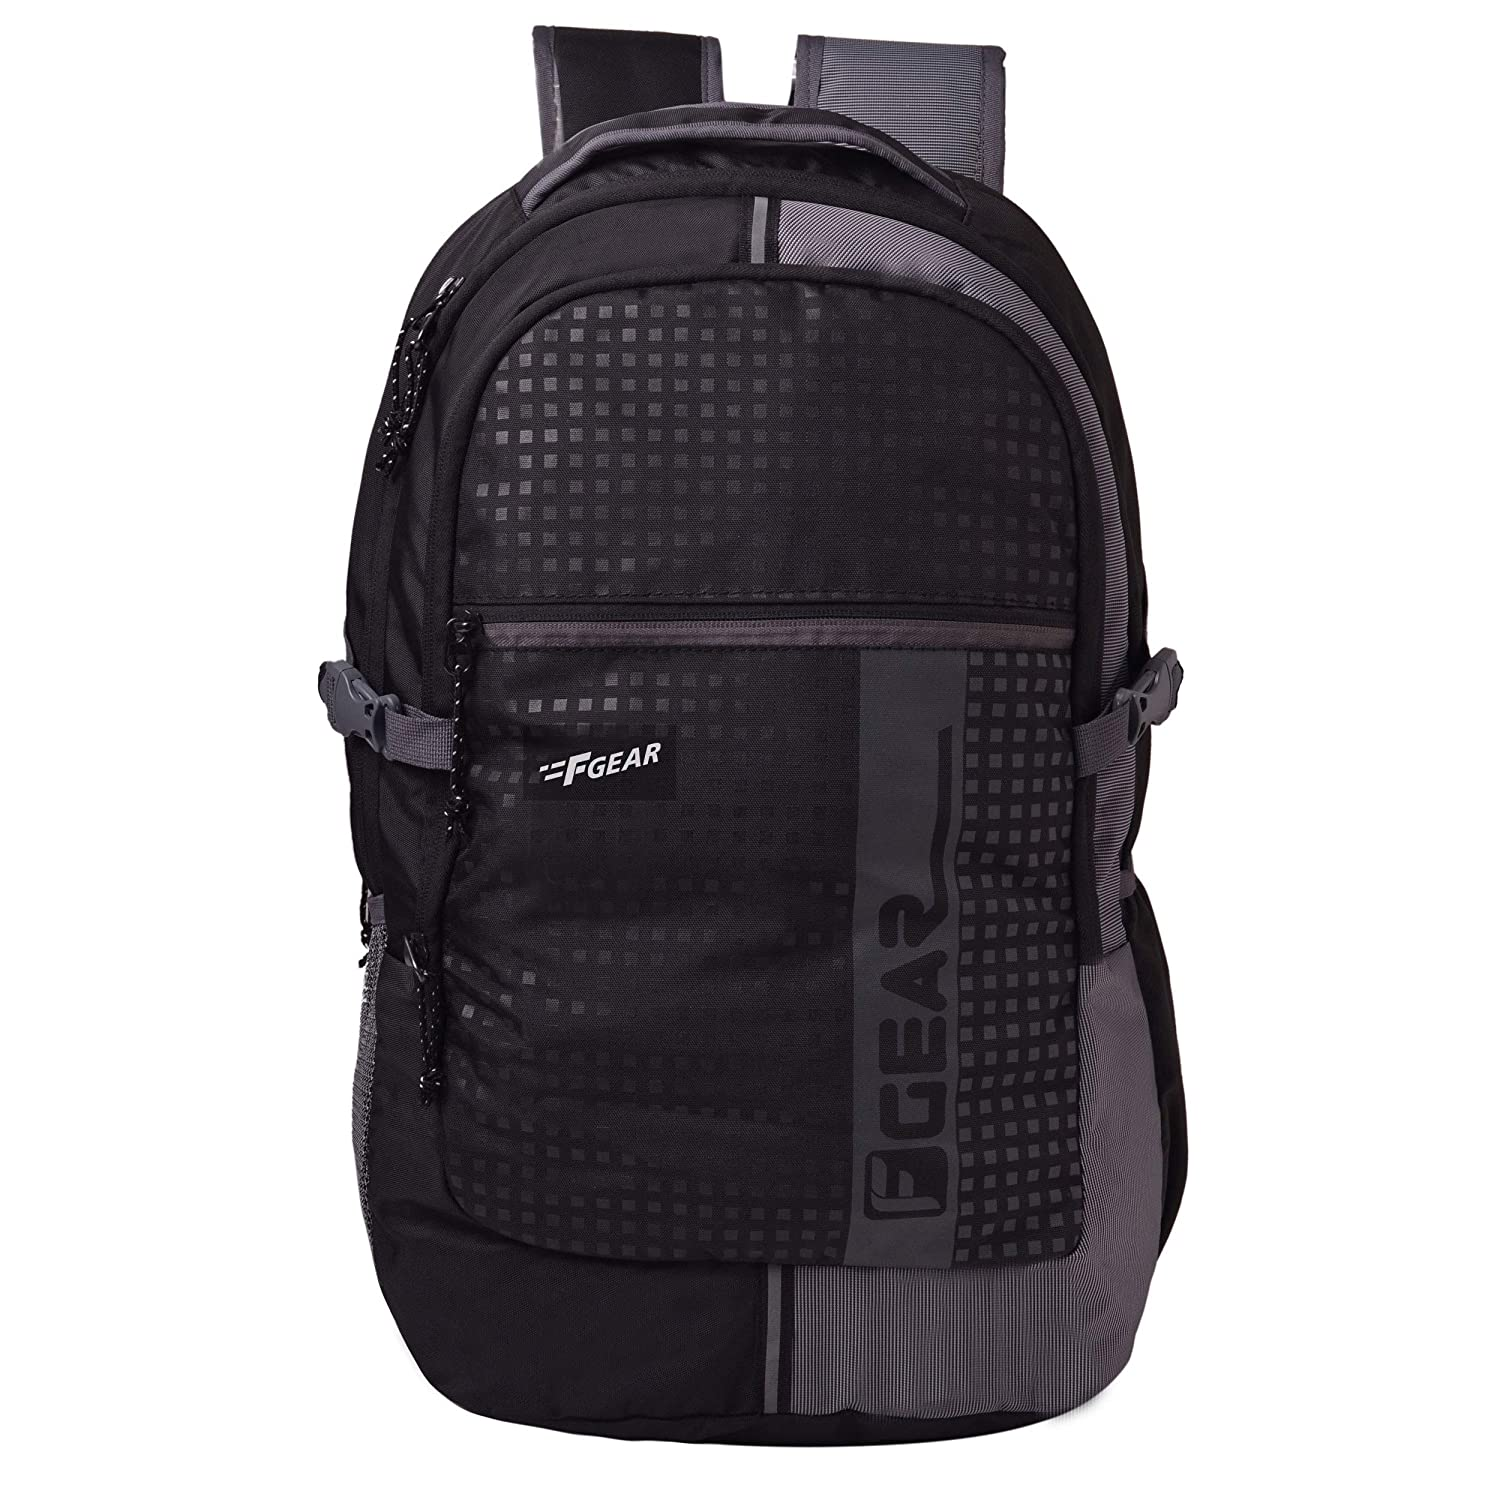 F Gear Blow Laptop Backpack with Rain Cover 32 Liters (Black,Grey) SCH Bag